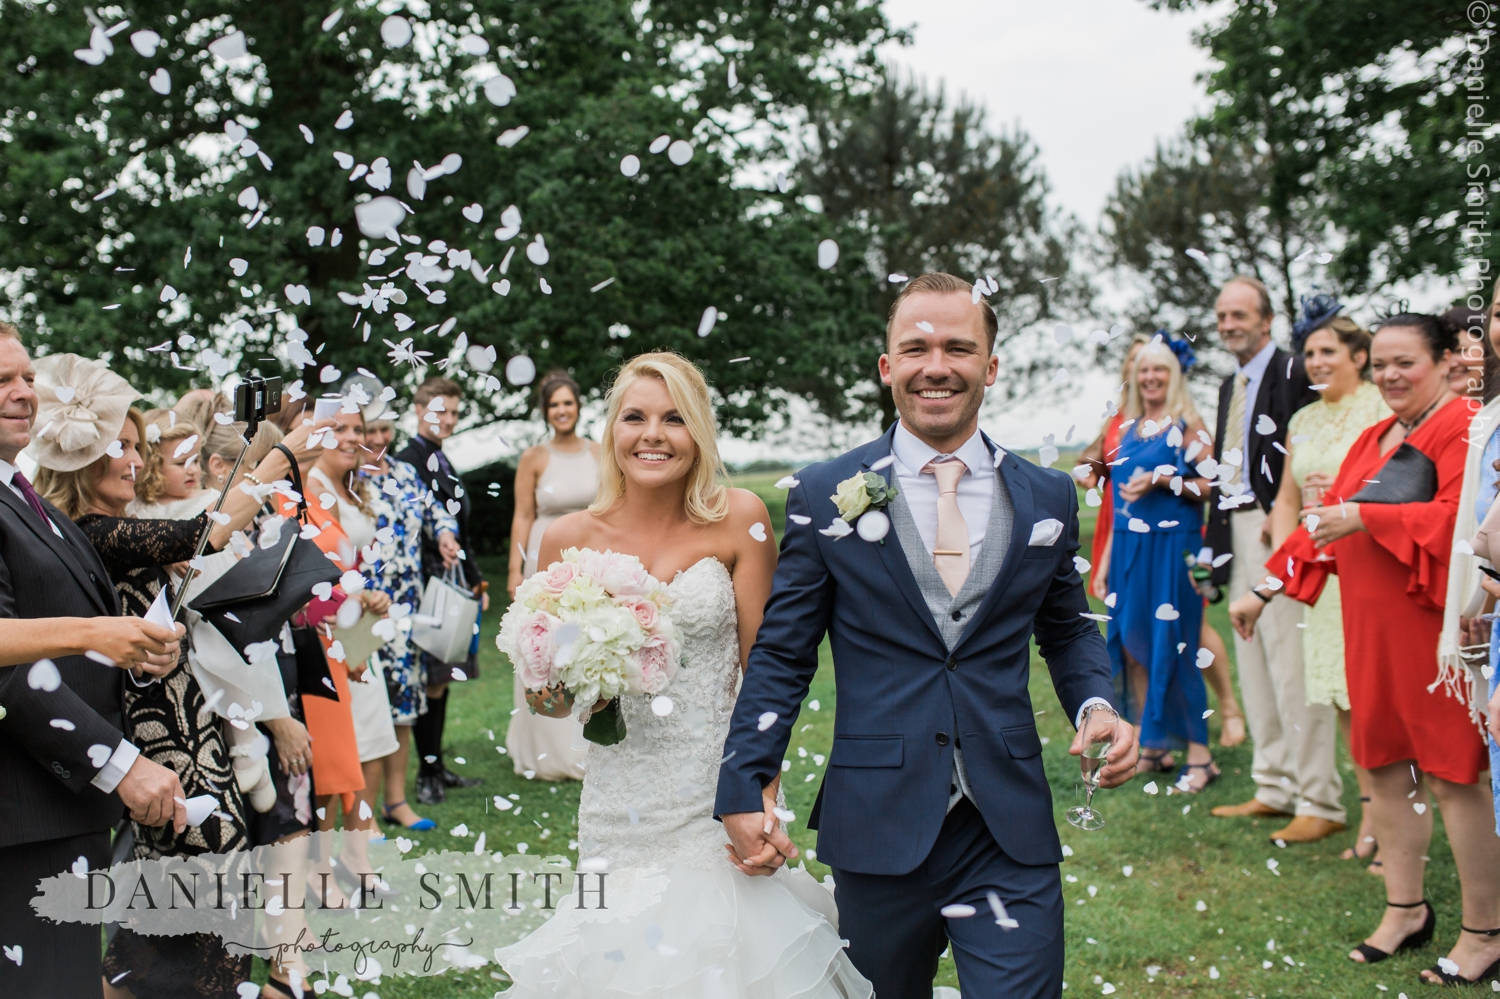 confetti wedding photo at blake hall with groom laughing